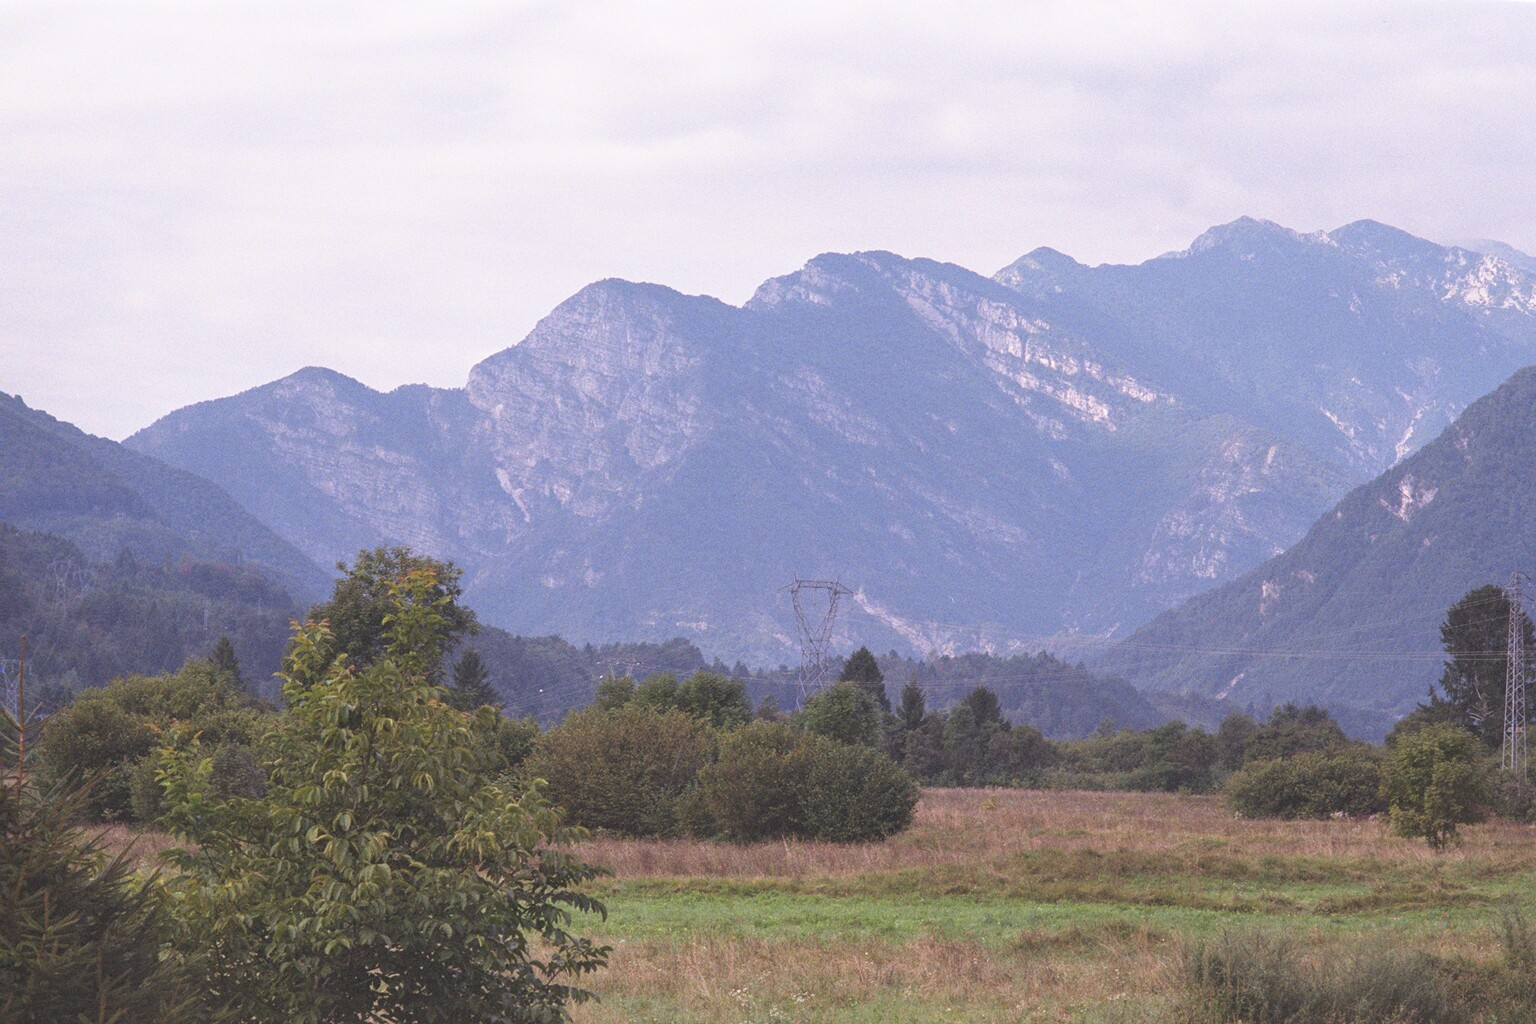 View of the mountains near Tramonti di Sotto in northern Italy, home region of many who settled on Norfolk Avenue.